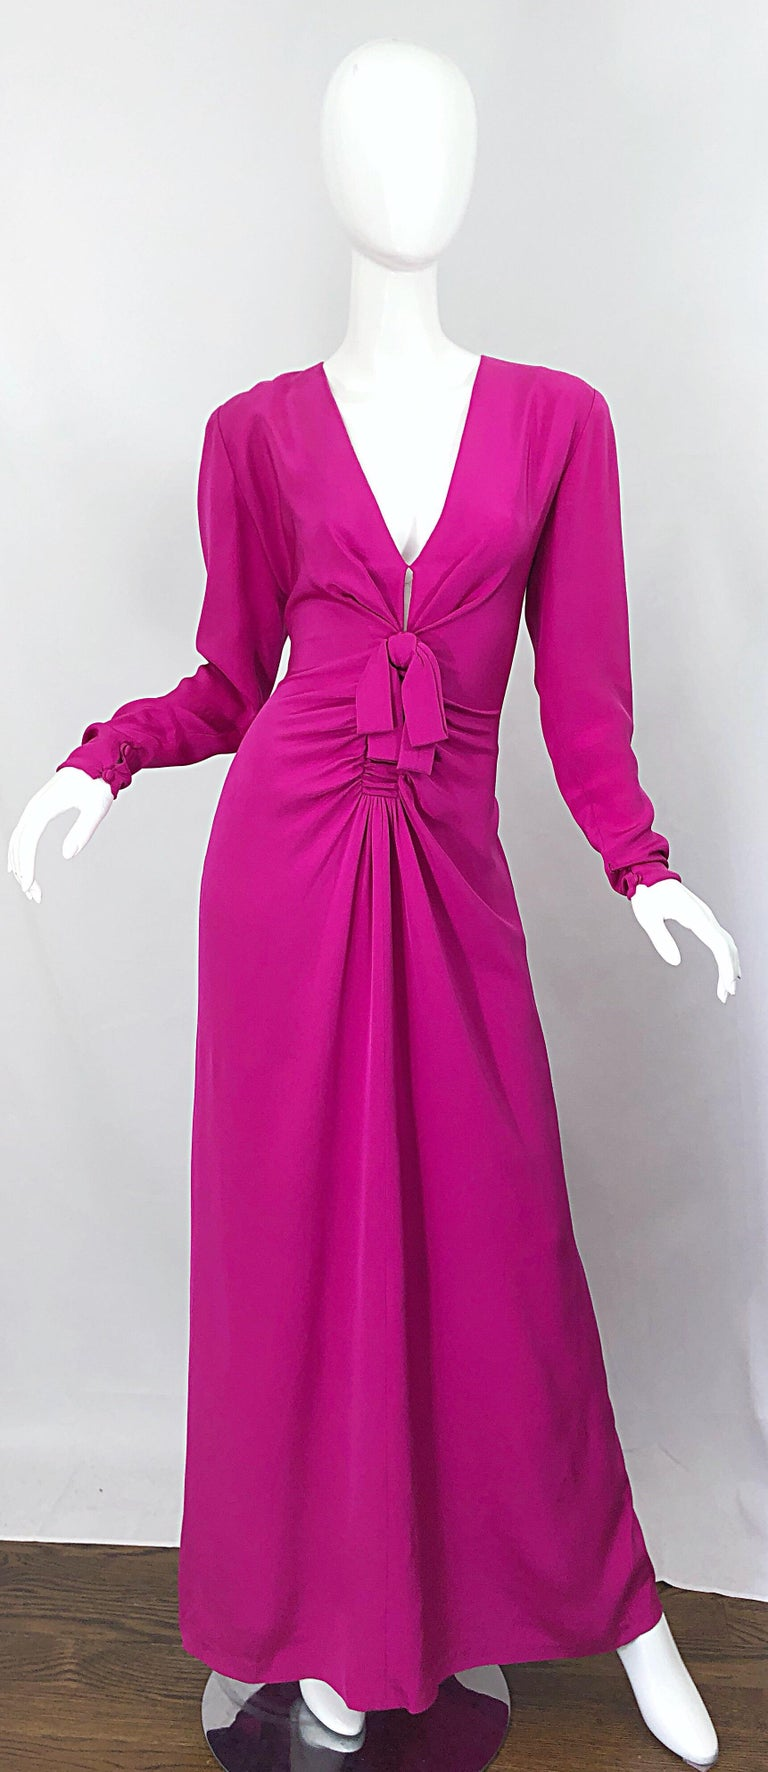 Stunning early 1980s BILL BLASS for NEIMAN MARCUS Couture quality hot pink / magenta fuchsia long sleeve silk jersey cut-out evening gown! Features a fitted bodice with flattering ruched detail at the waist. Cut-out at center bust reveals just the